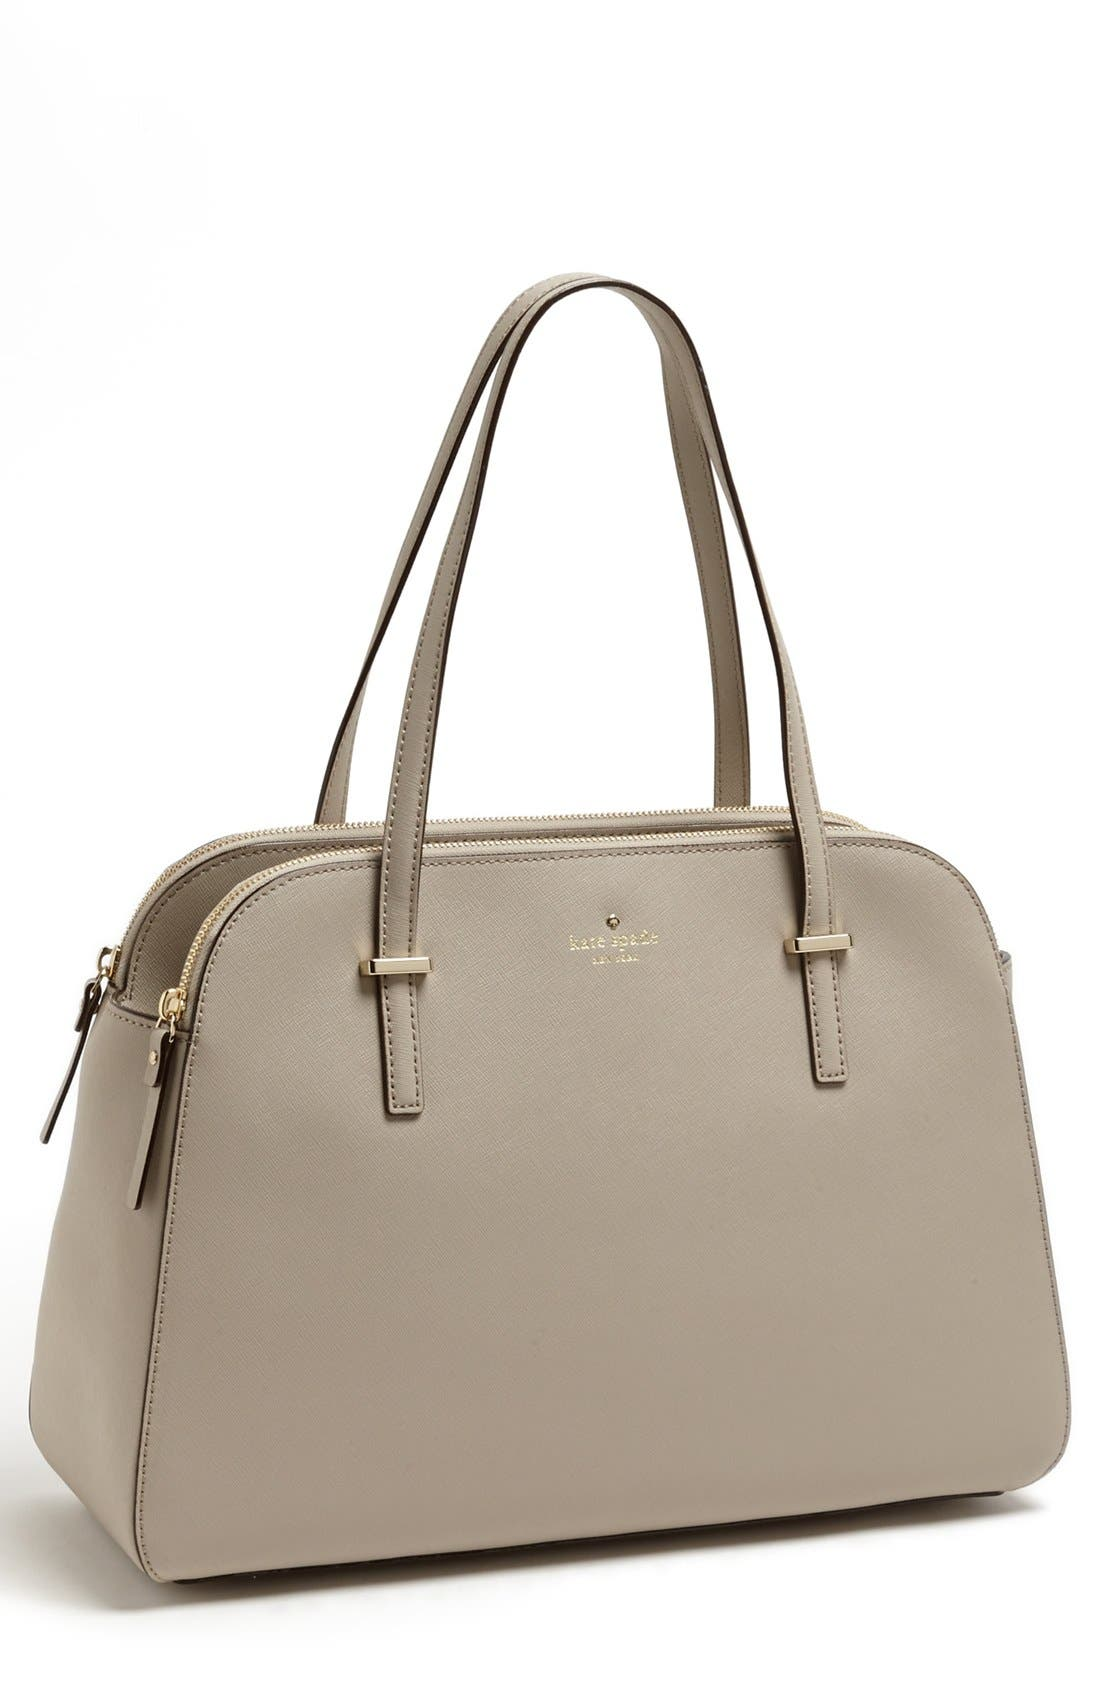 Main Image - kate spade new york 'cedar street - elissa' leather tote